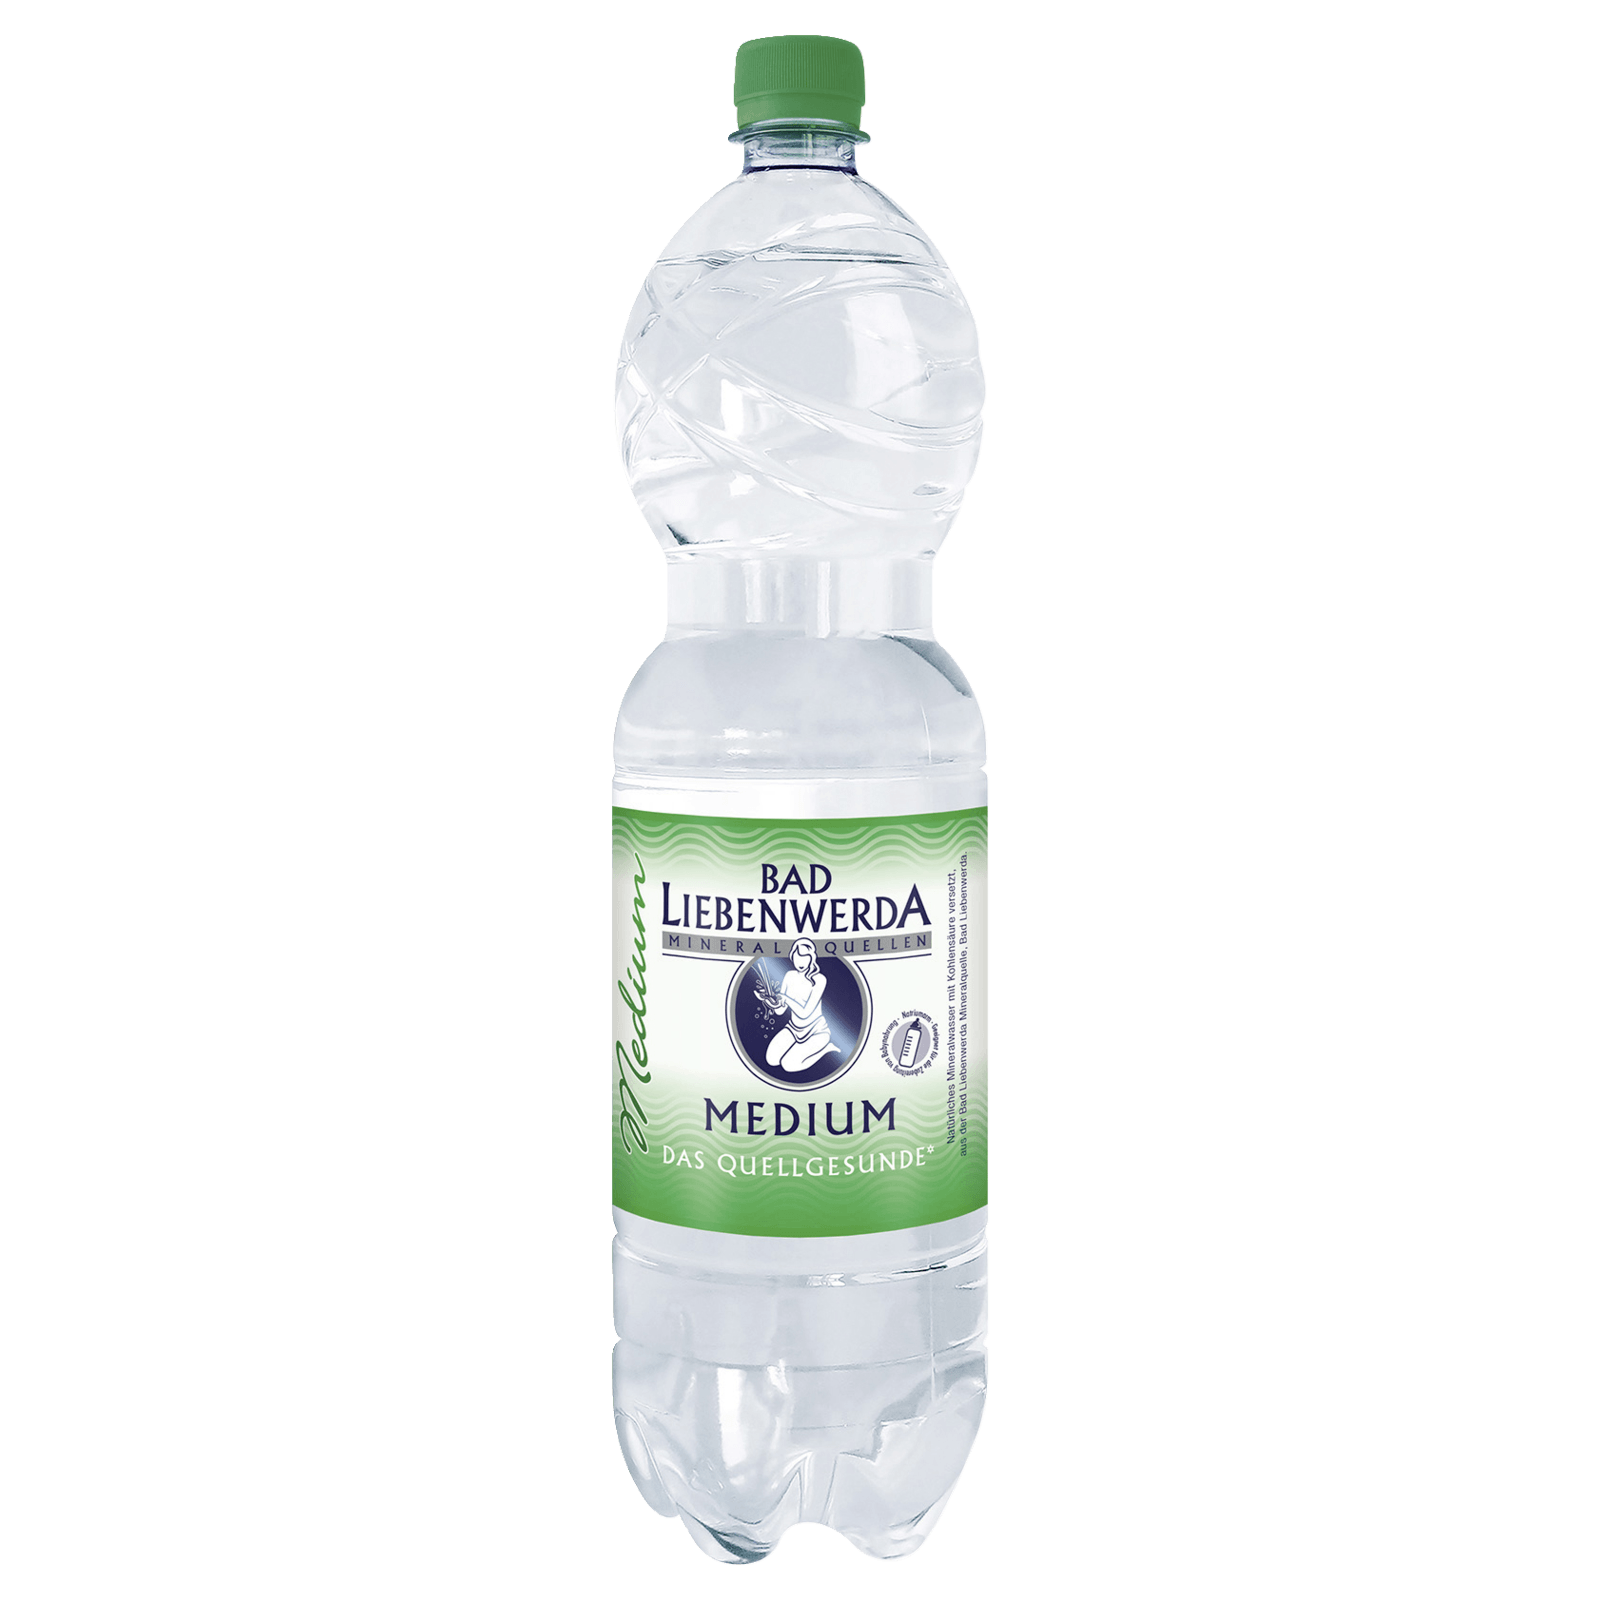 Bad Liebenwerda Mineralwasser Medium 1,5l